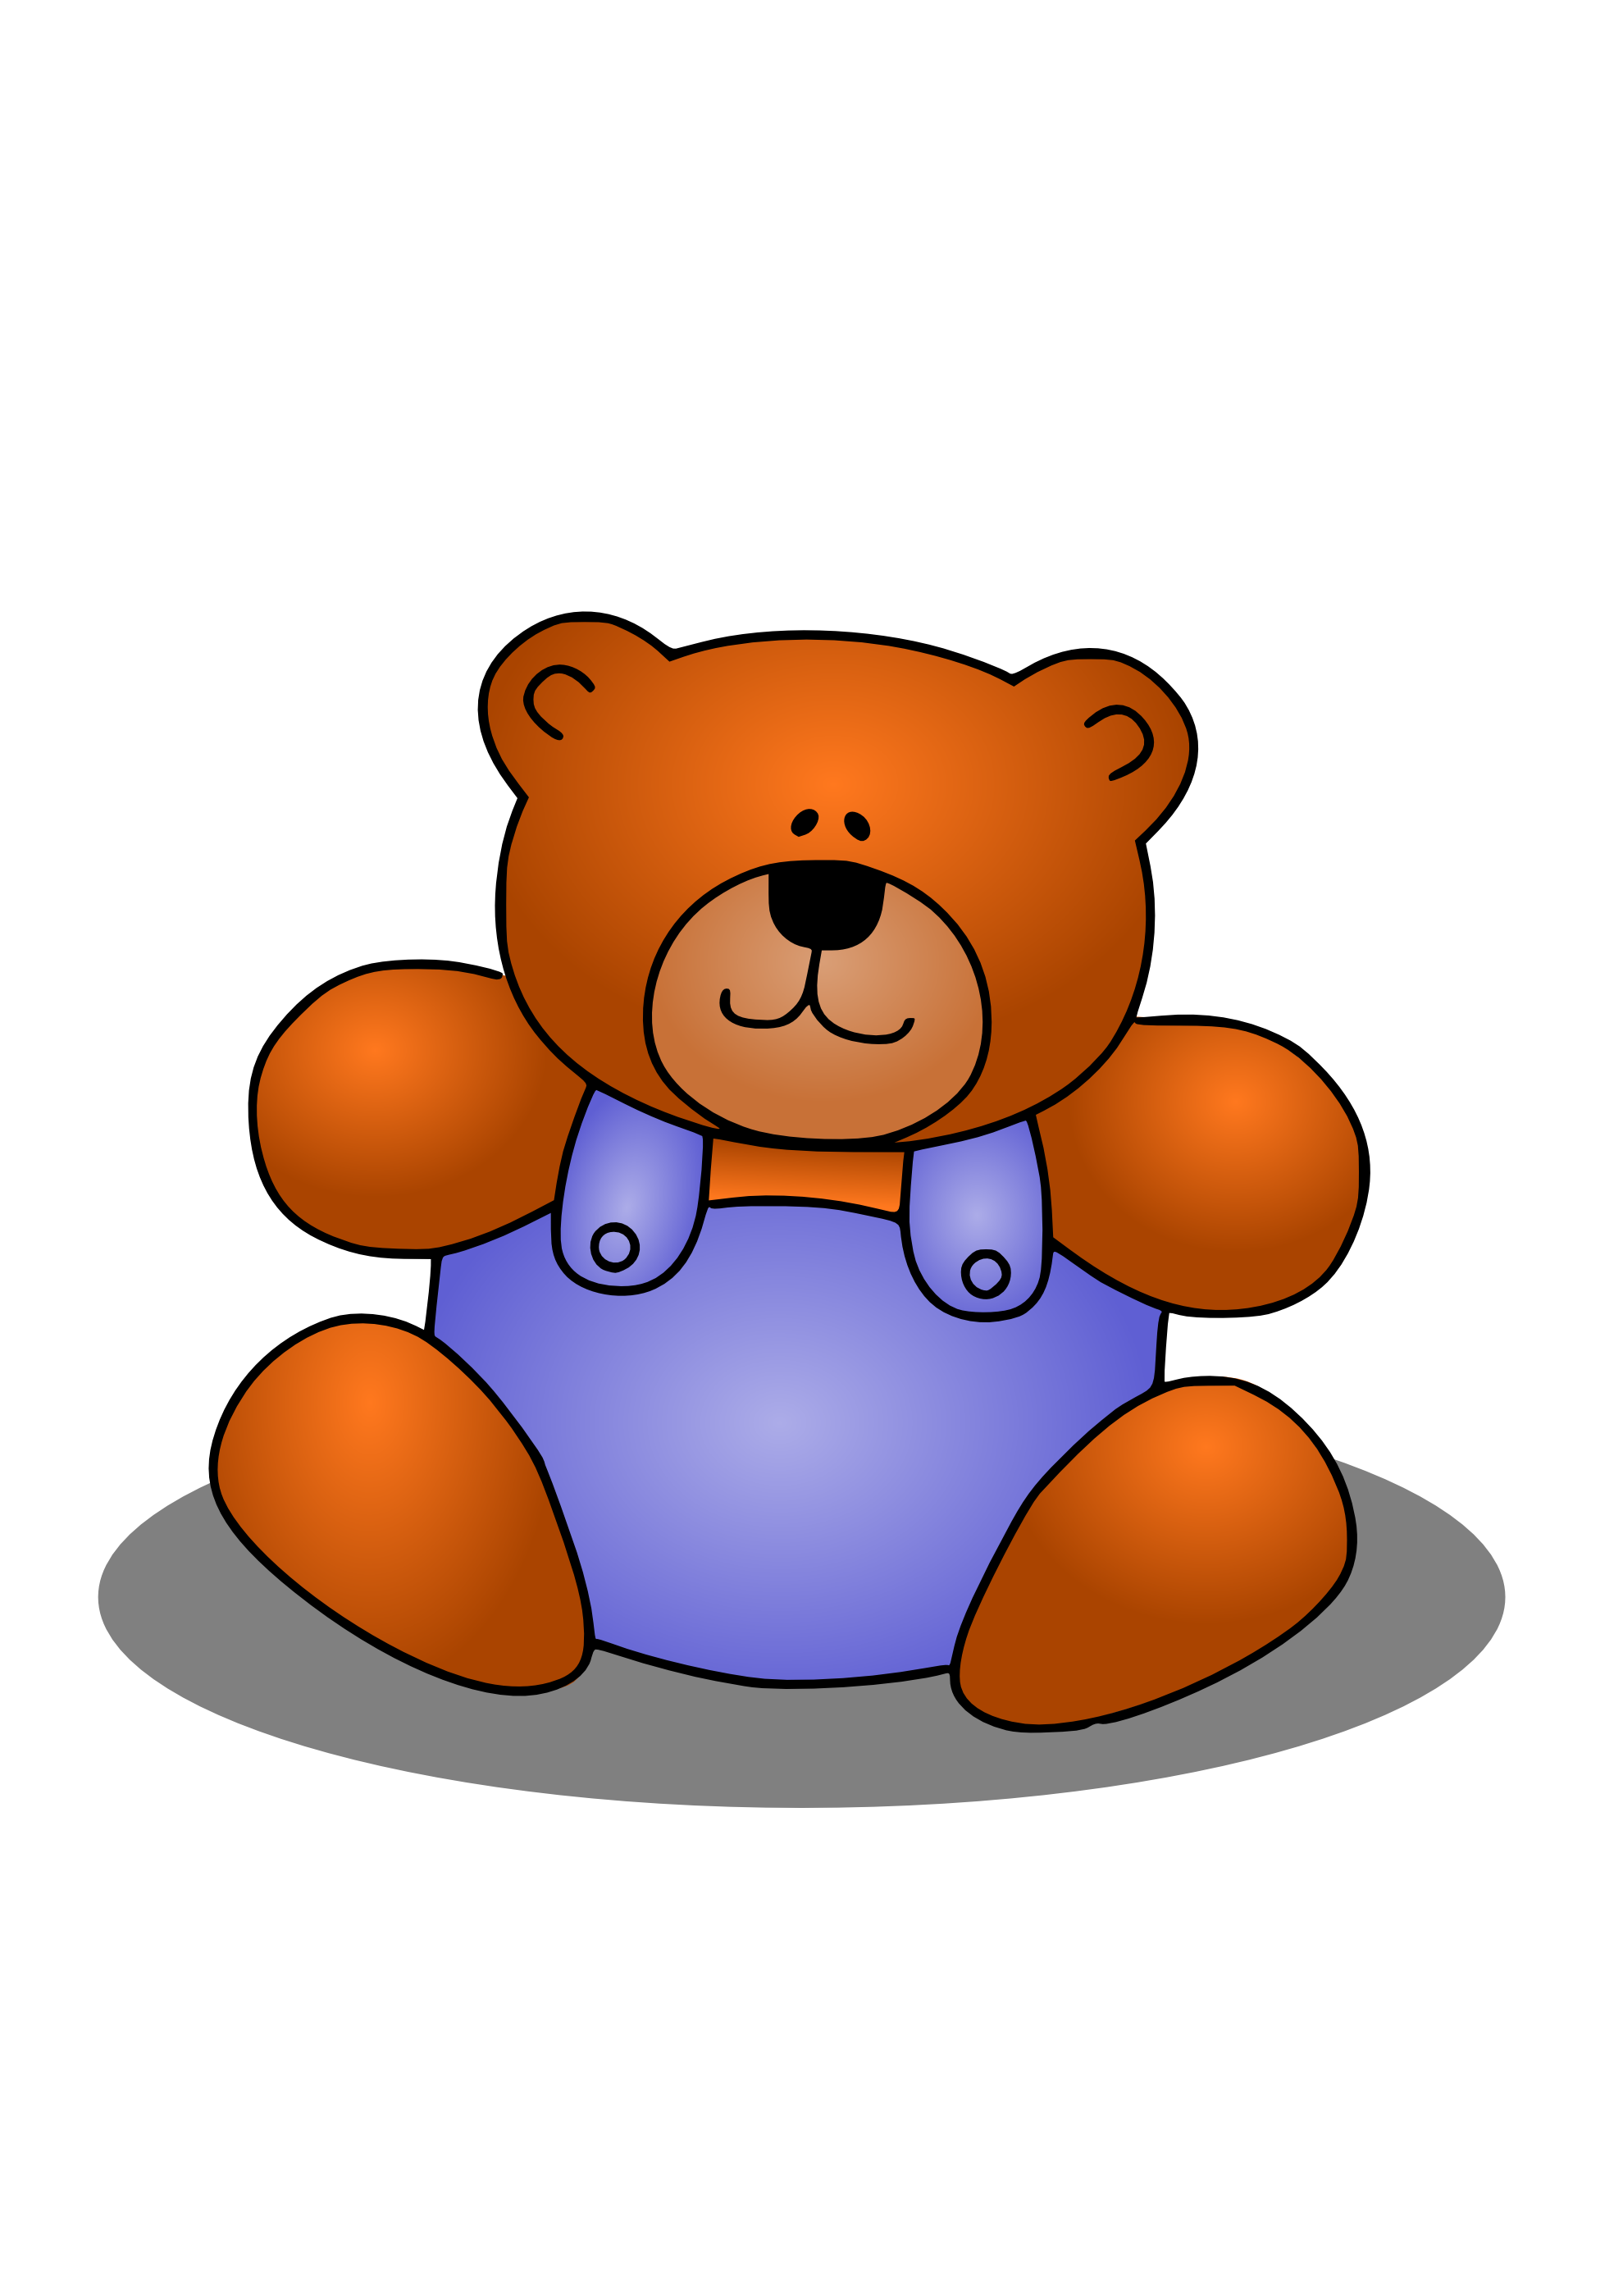 Stuffed animal dog clipart.